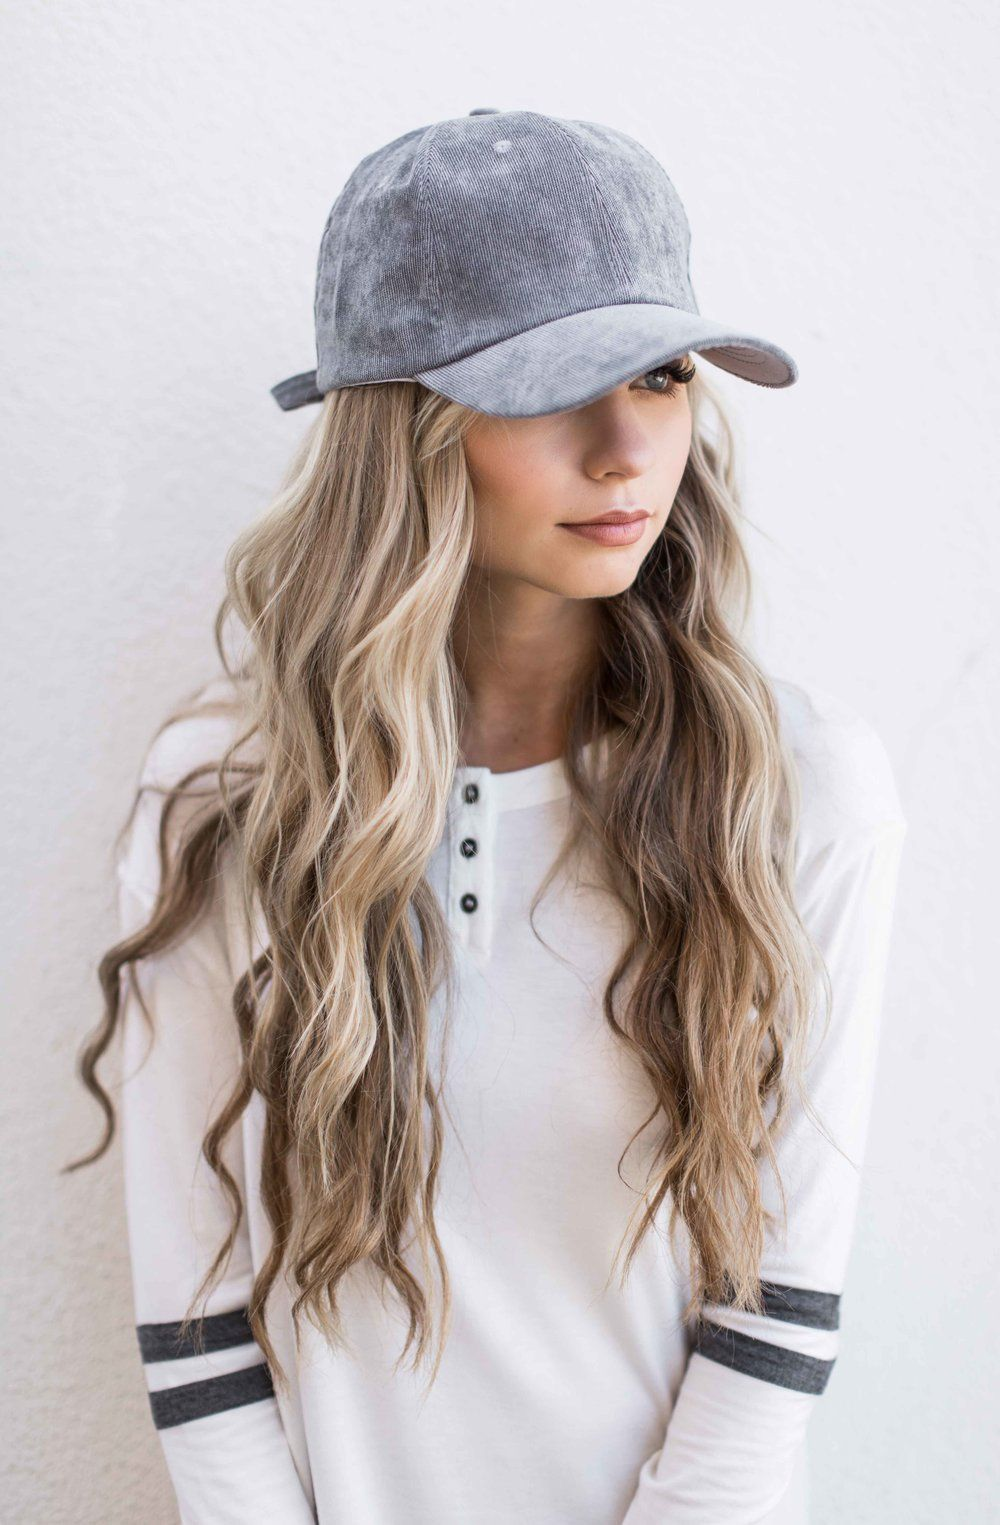 grey suede baseball cap  womensfashion  FashionTrendsForTeens White  Baseball Cap Outfit f048b384e220